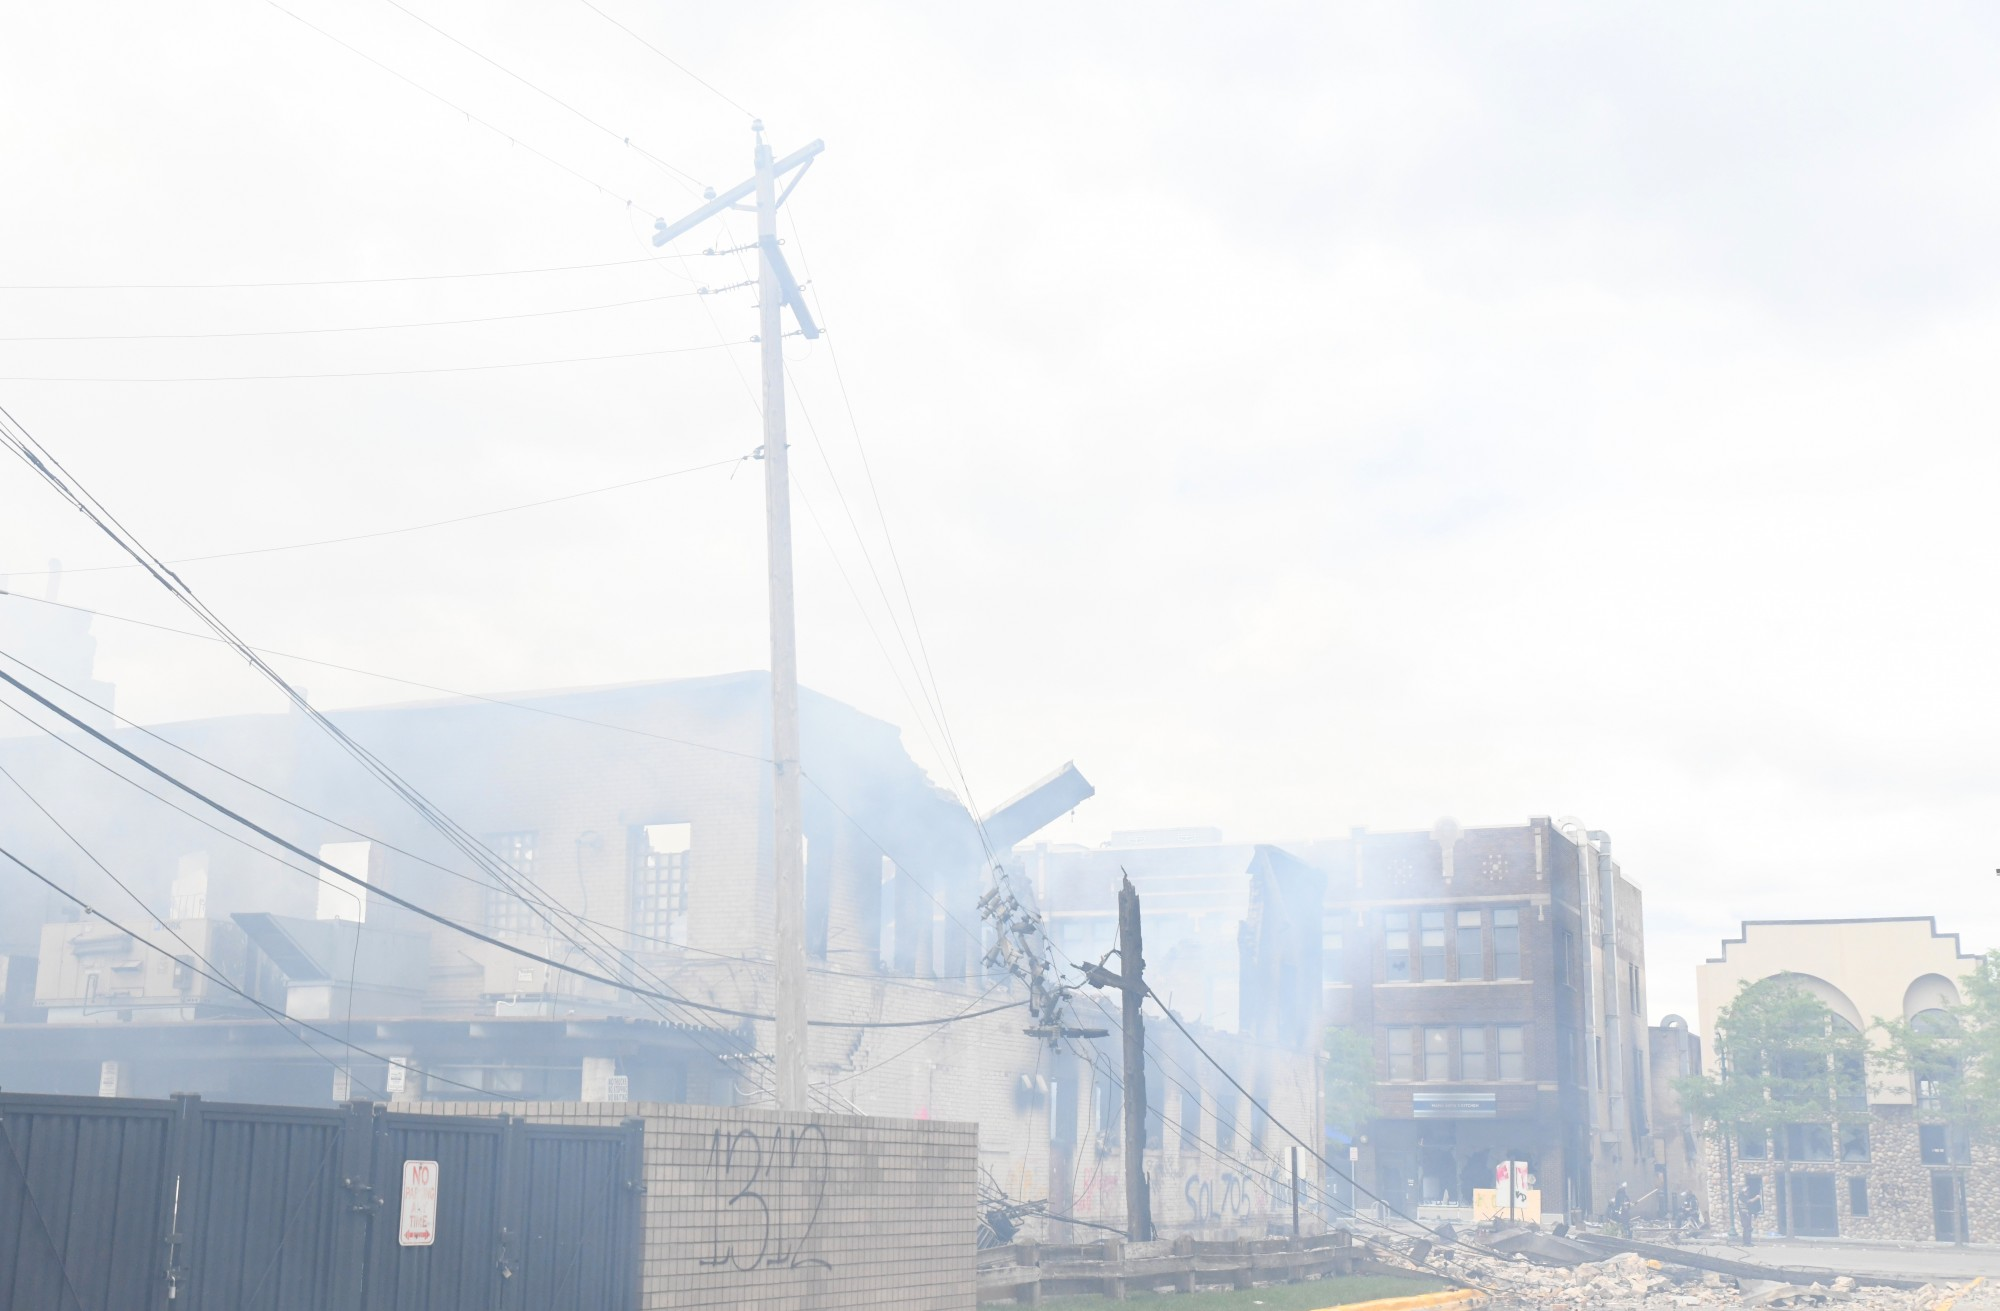 Smoke heavily obscures visibility as buildings continue to burn near the Minneapolis 3rd Police Precinct on Friday, May 29.